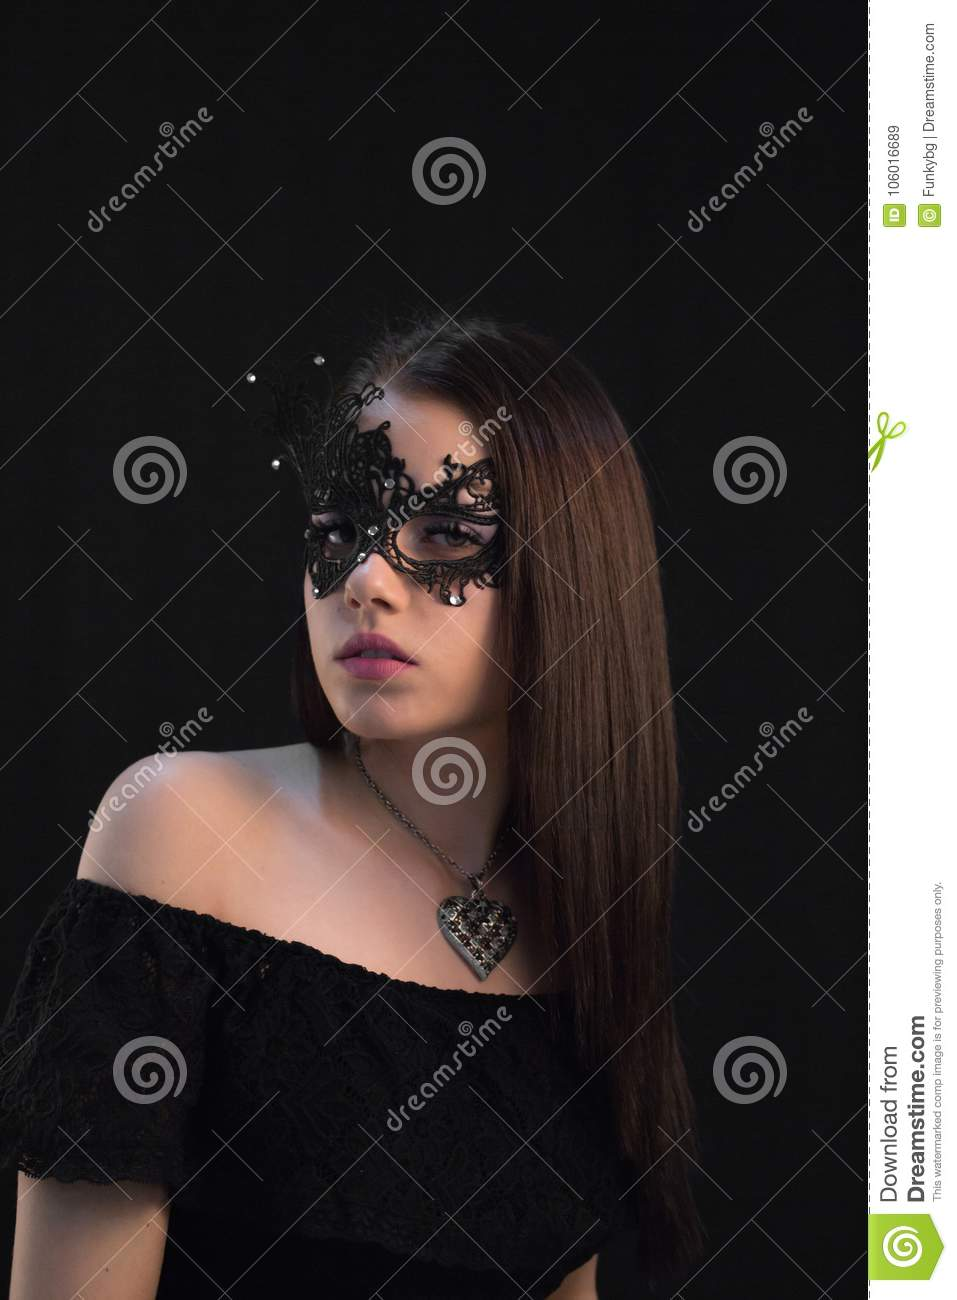 Young Mystic woman posing in mask